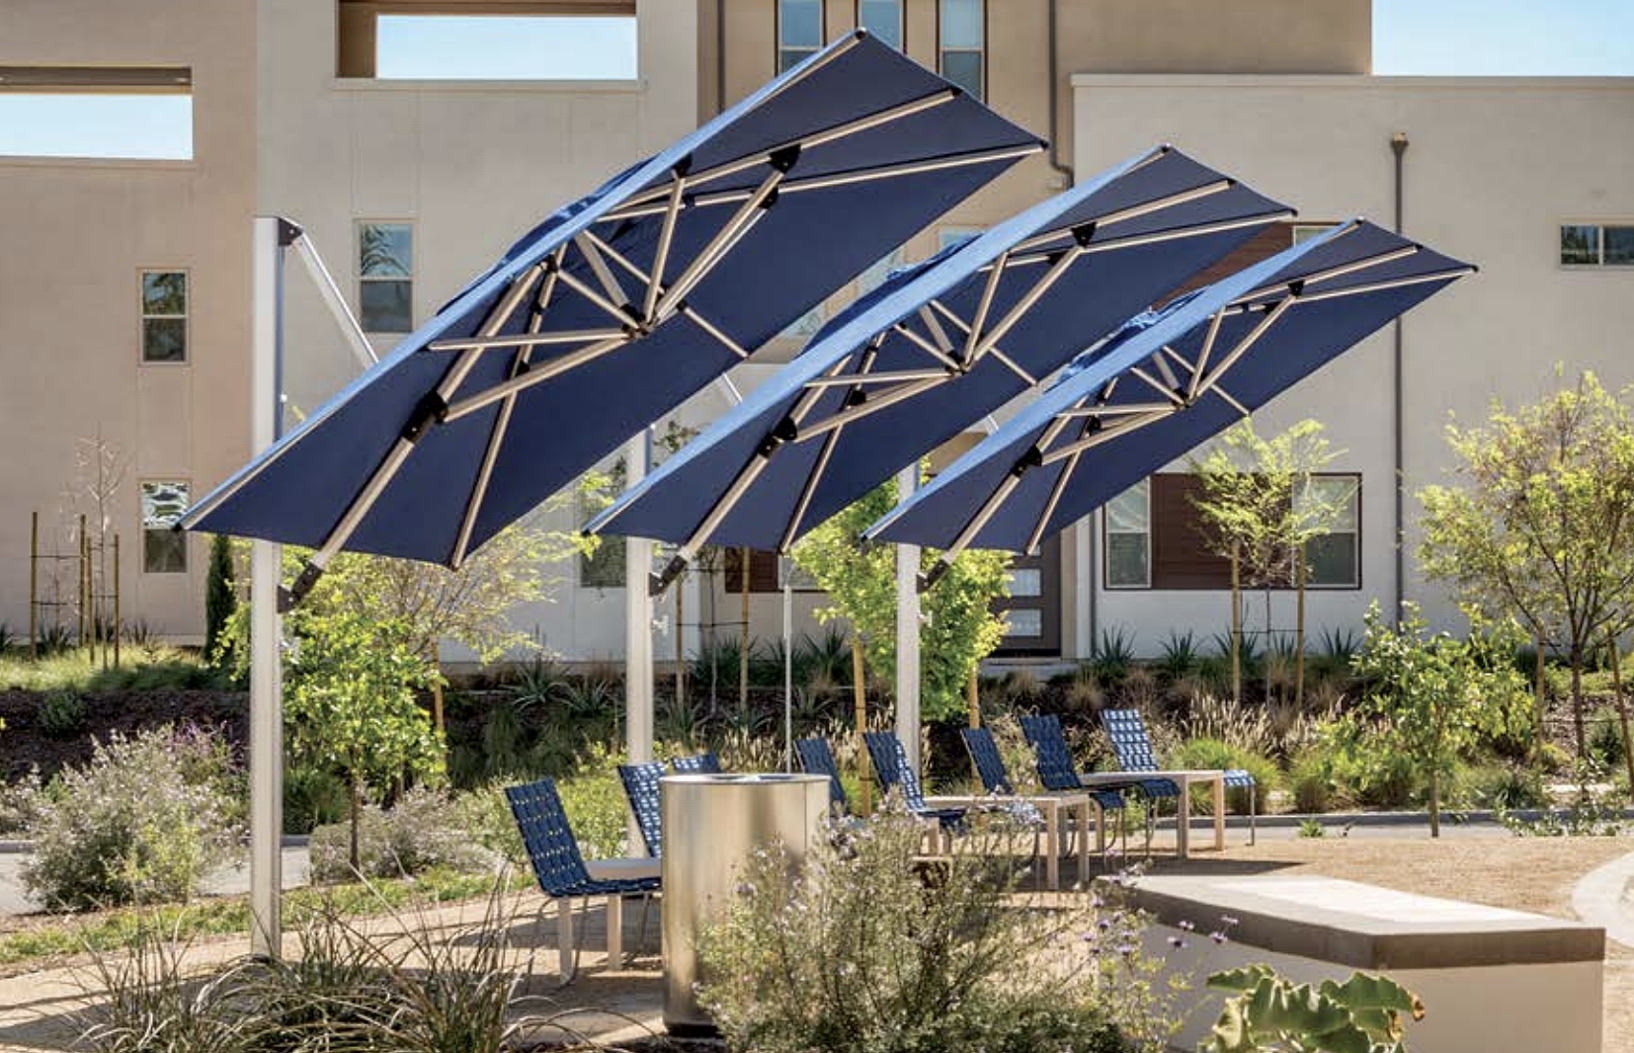 Durable Outdoor Umbrellas in Baton Rouge